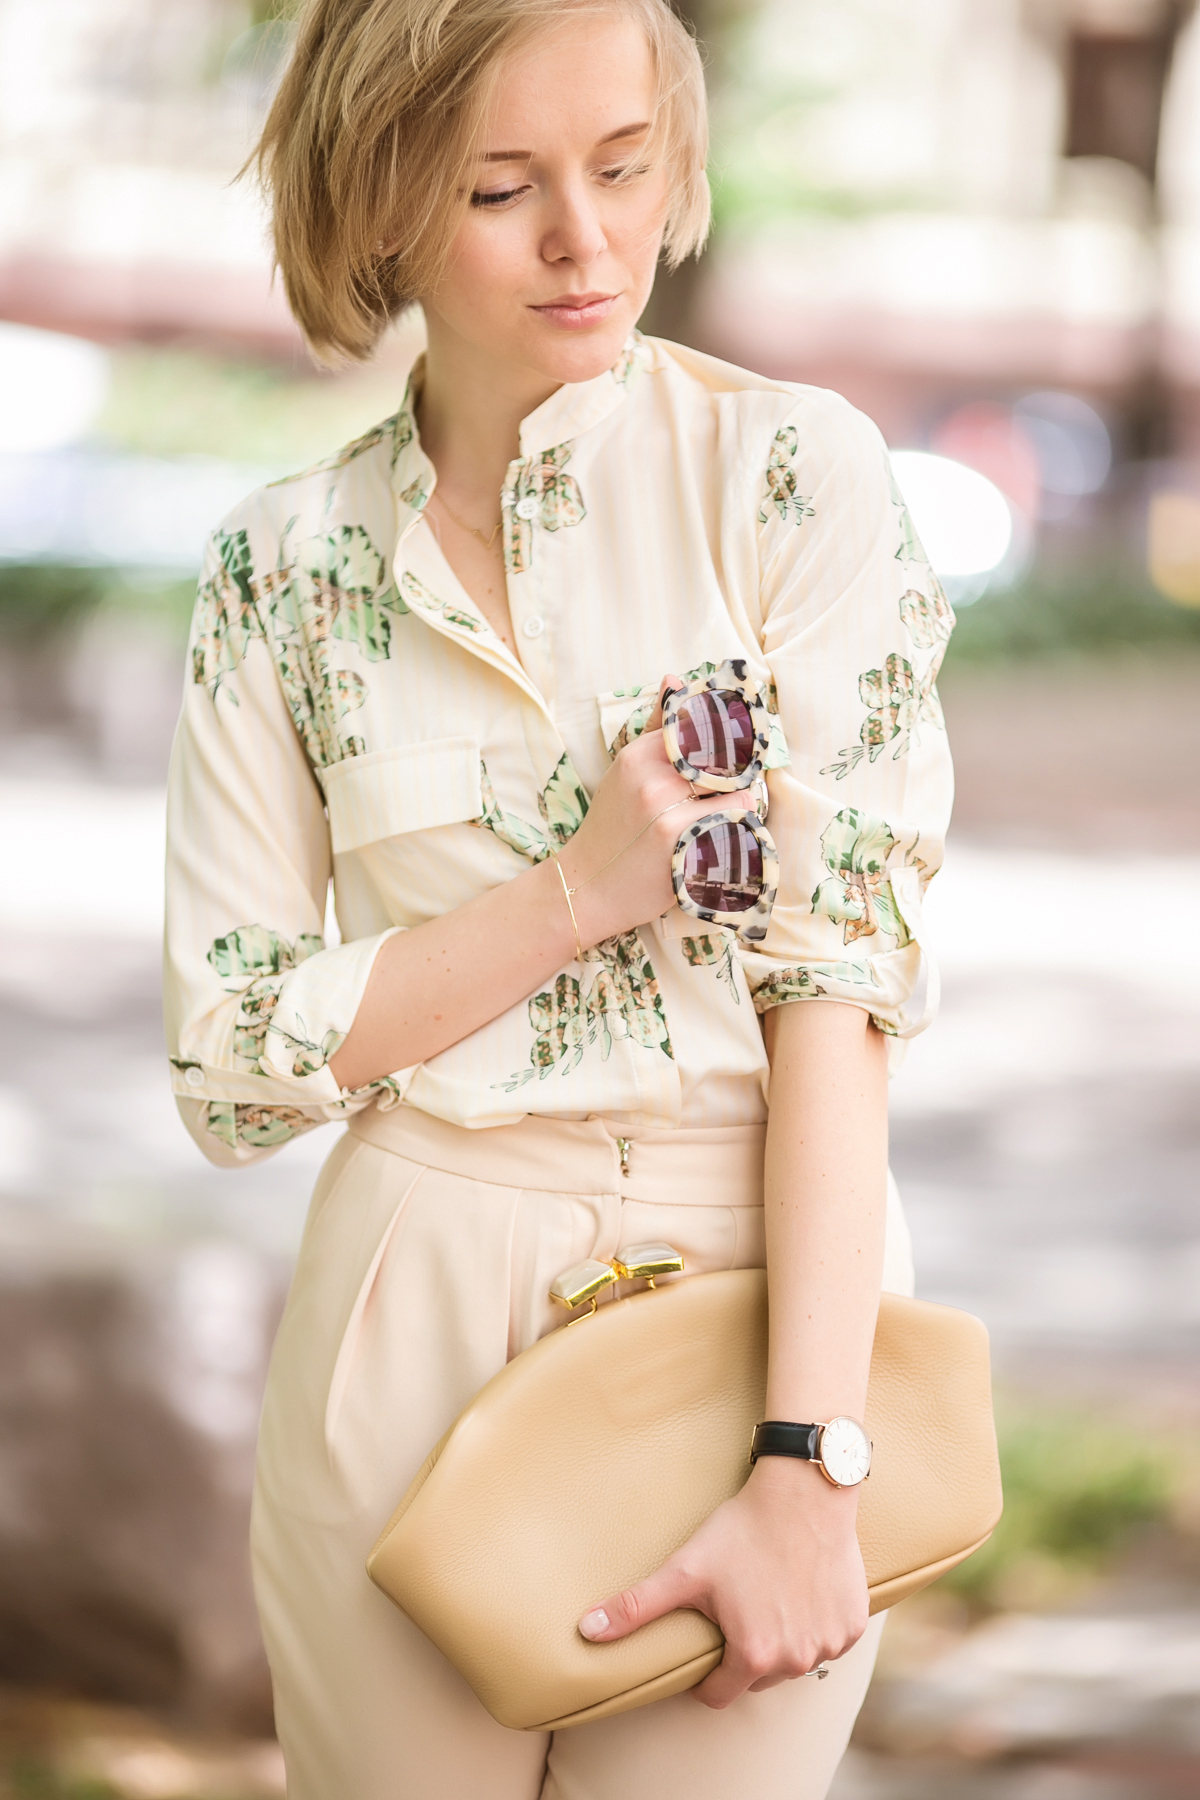 darya kamalova from thecablook in dallas texas is wearing beige pants and beige shirt with green leaves with marni retro ctutch and asos handmade sunglasses-24